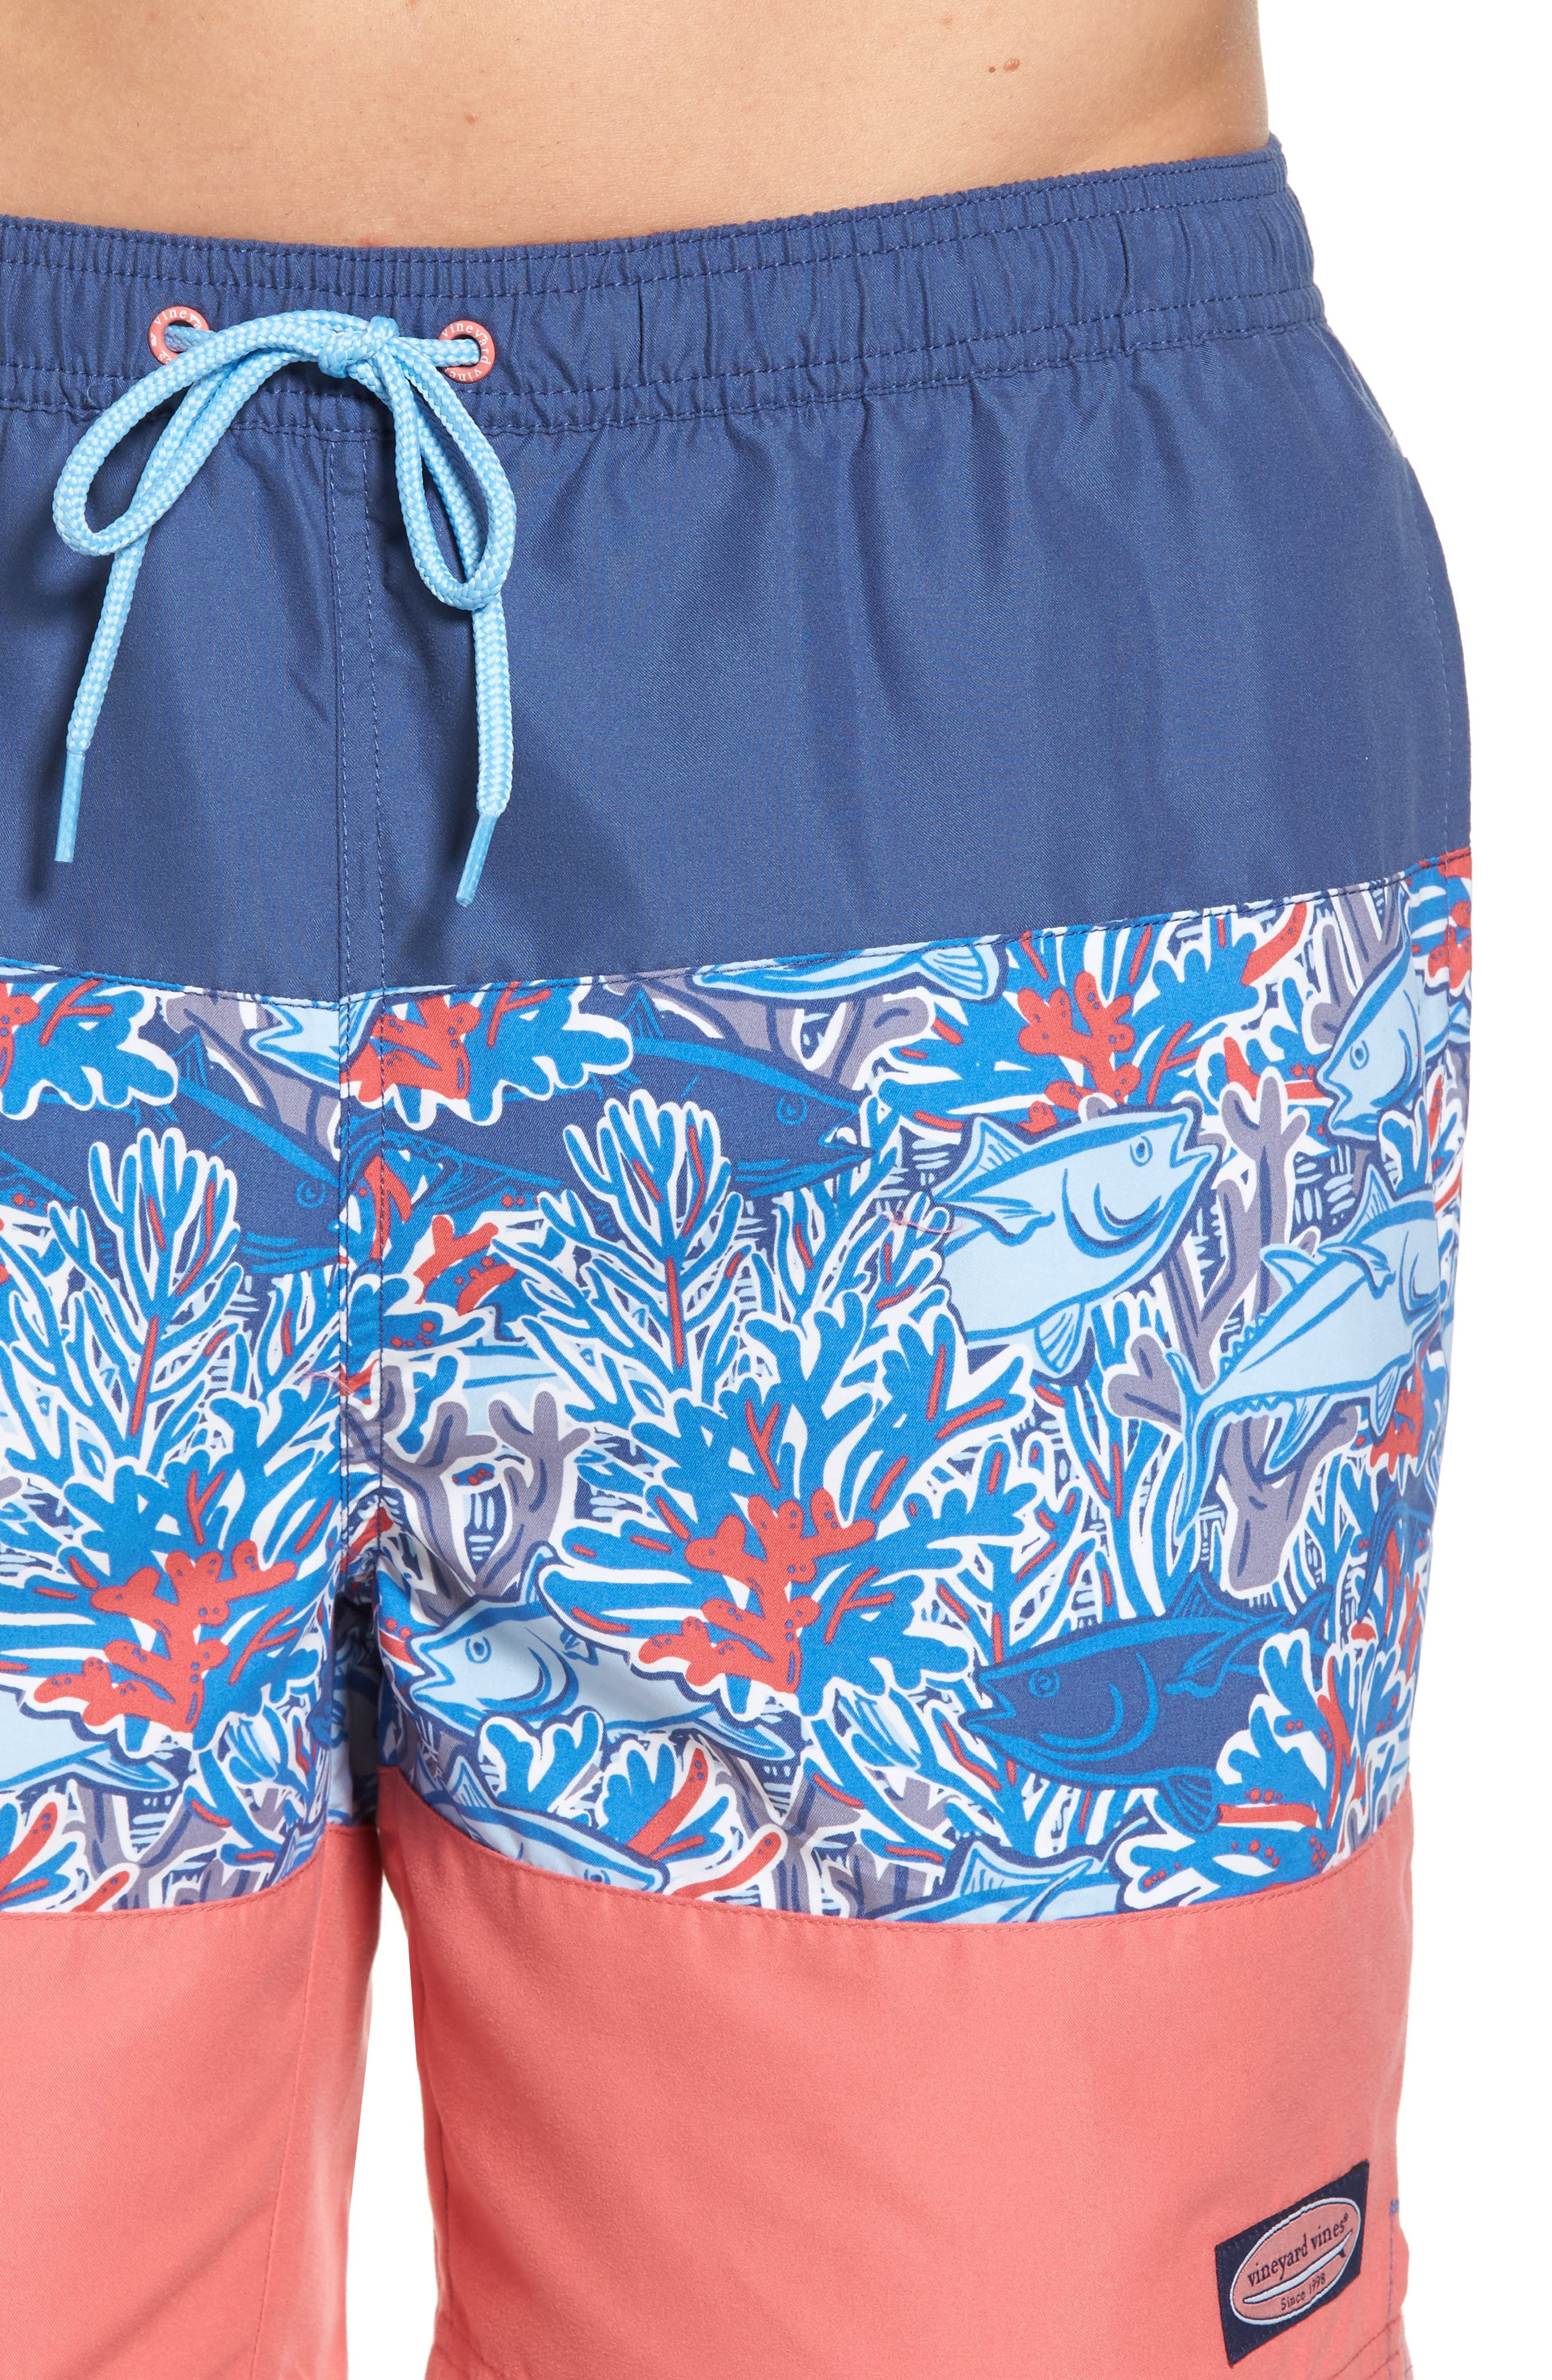 Chappy - Tuna in Coral Pieced Print Swim Trunks,                             Alternate thumbnail 4, color,                             Moonshine